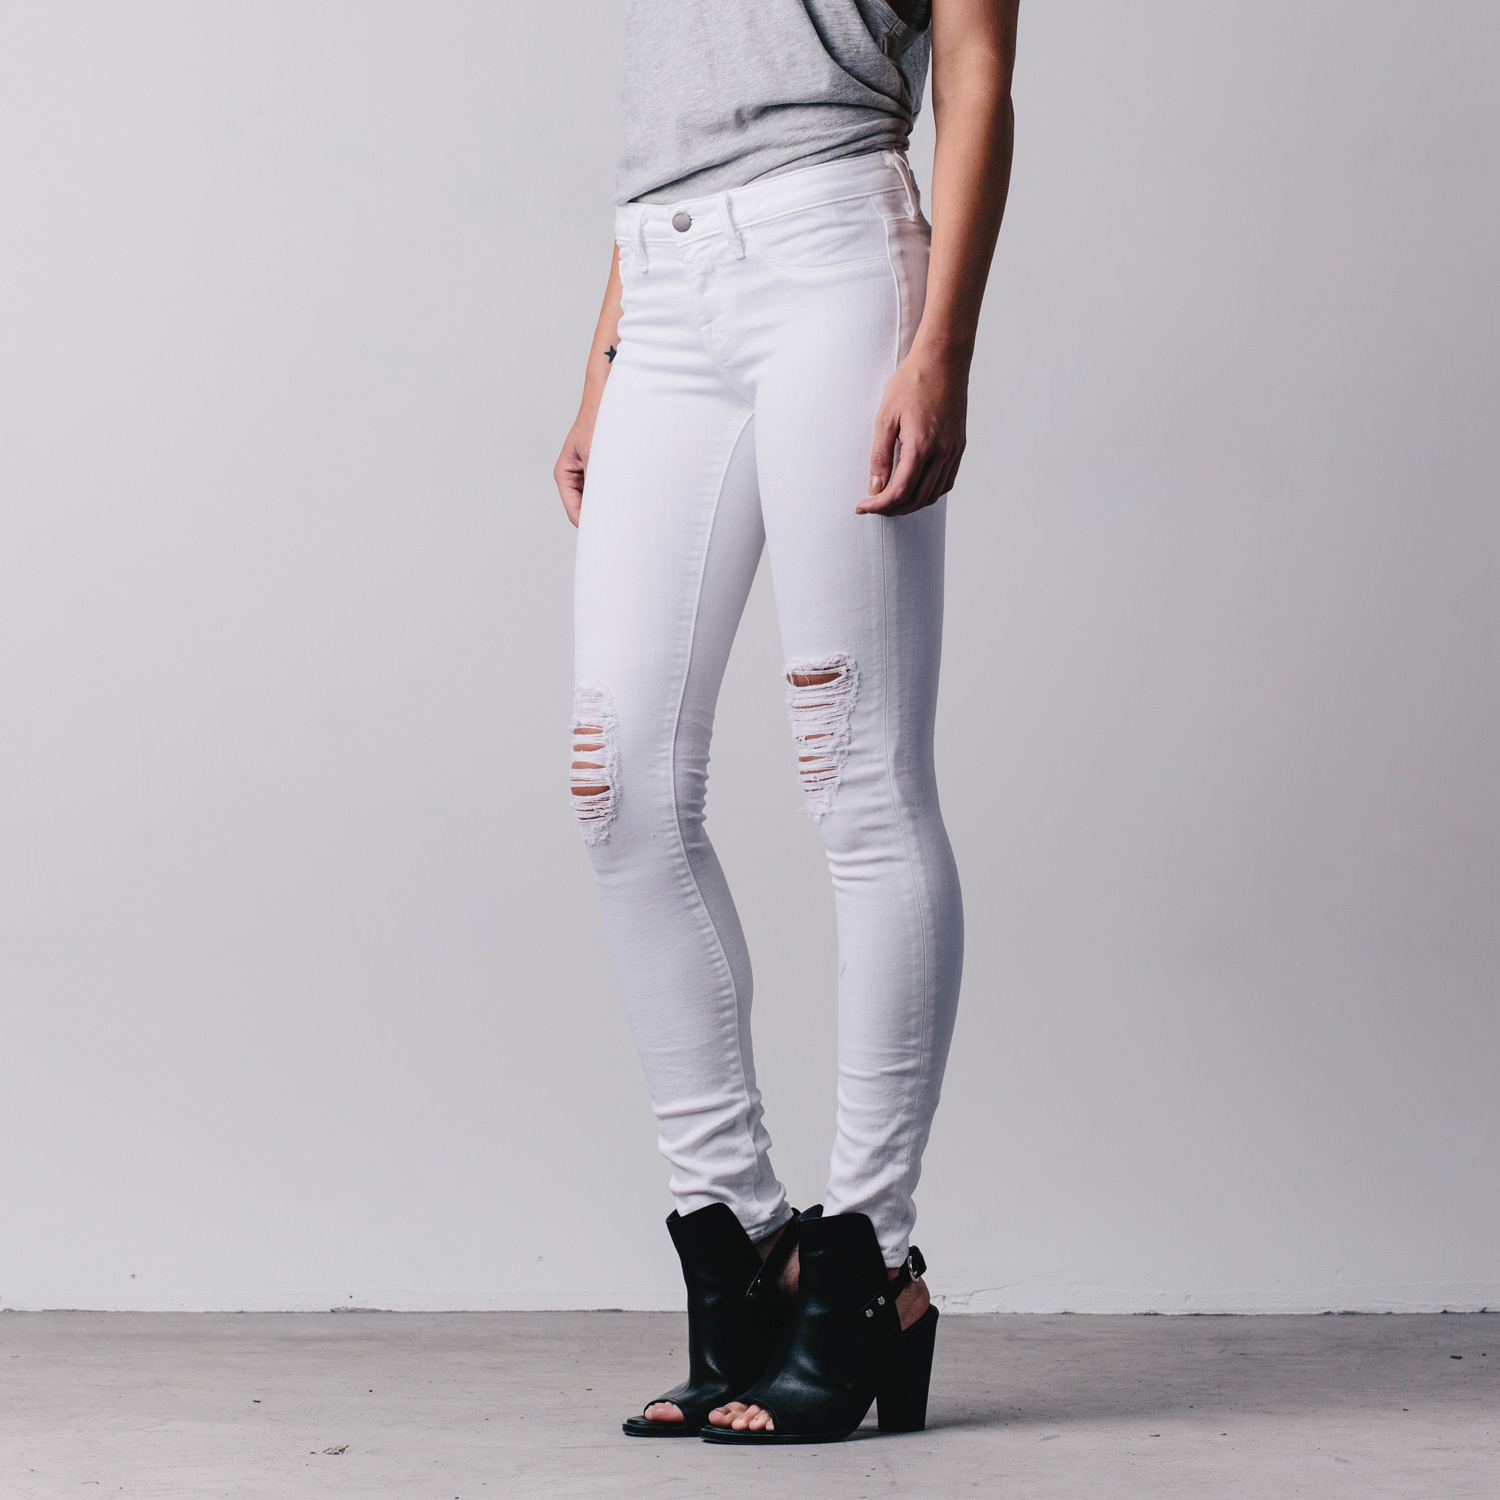 Womens Ripped Mid Rise Skinny Jeans In White | DSTLD Premium Denim